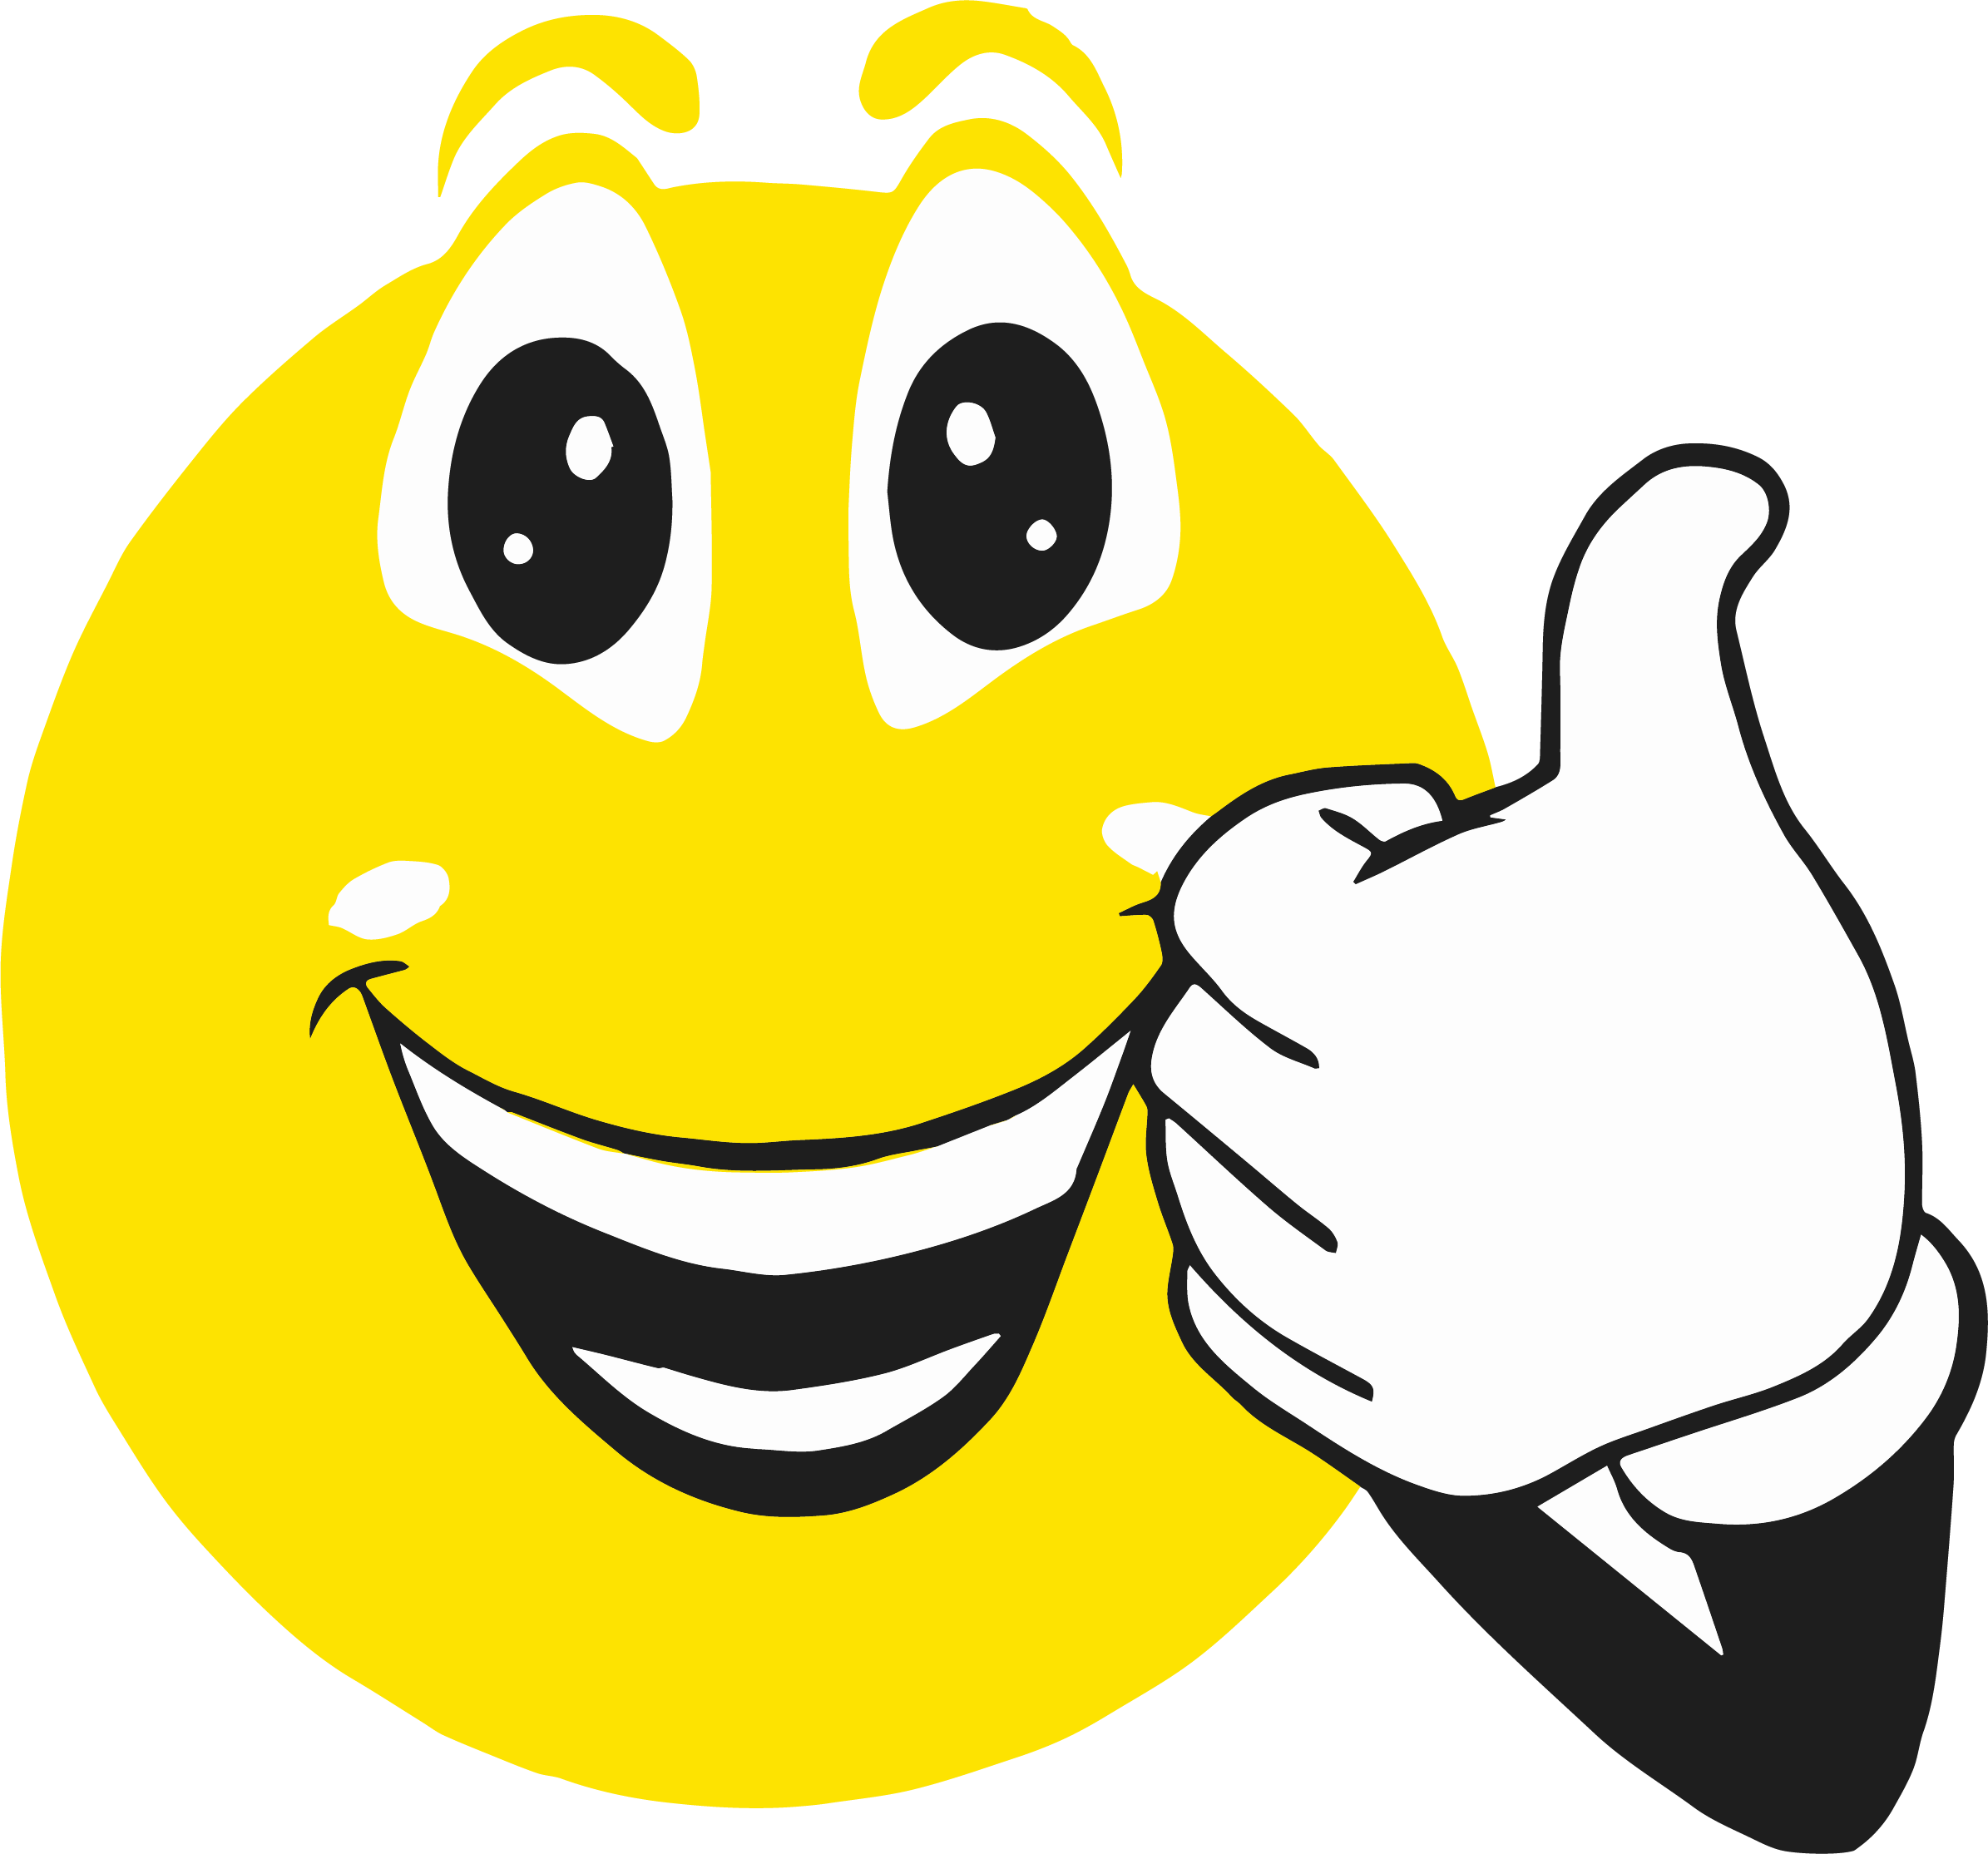 Clipart thumbs up smiley face banner free Smiley Face Clip Art Thumbs Up | Clipartly.com banner free